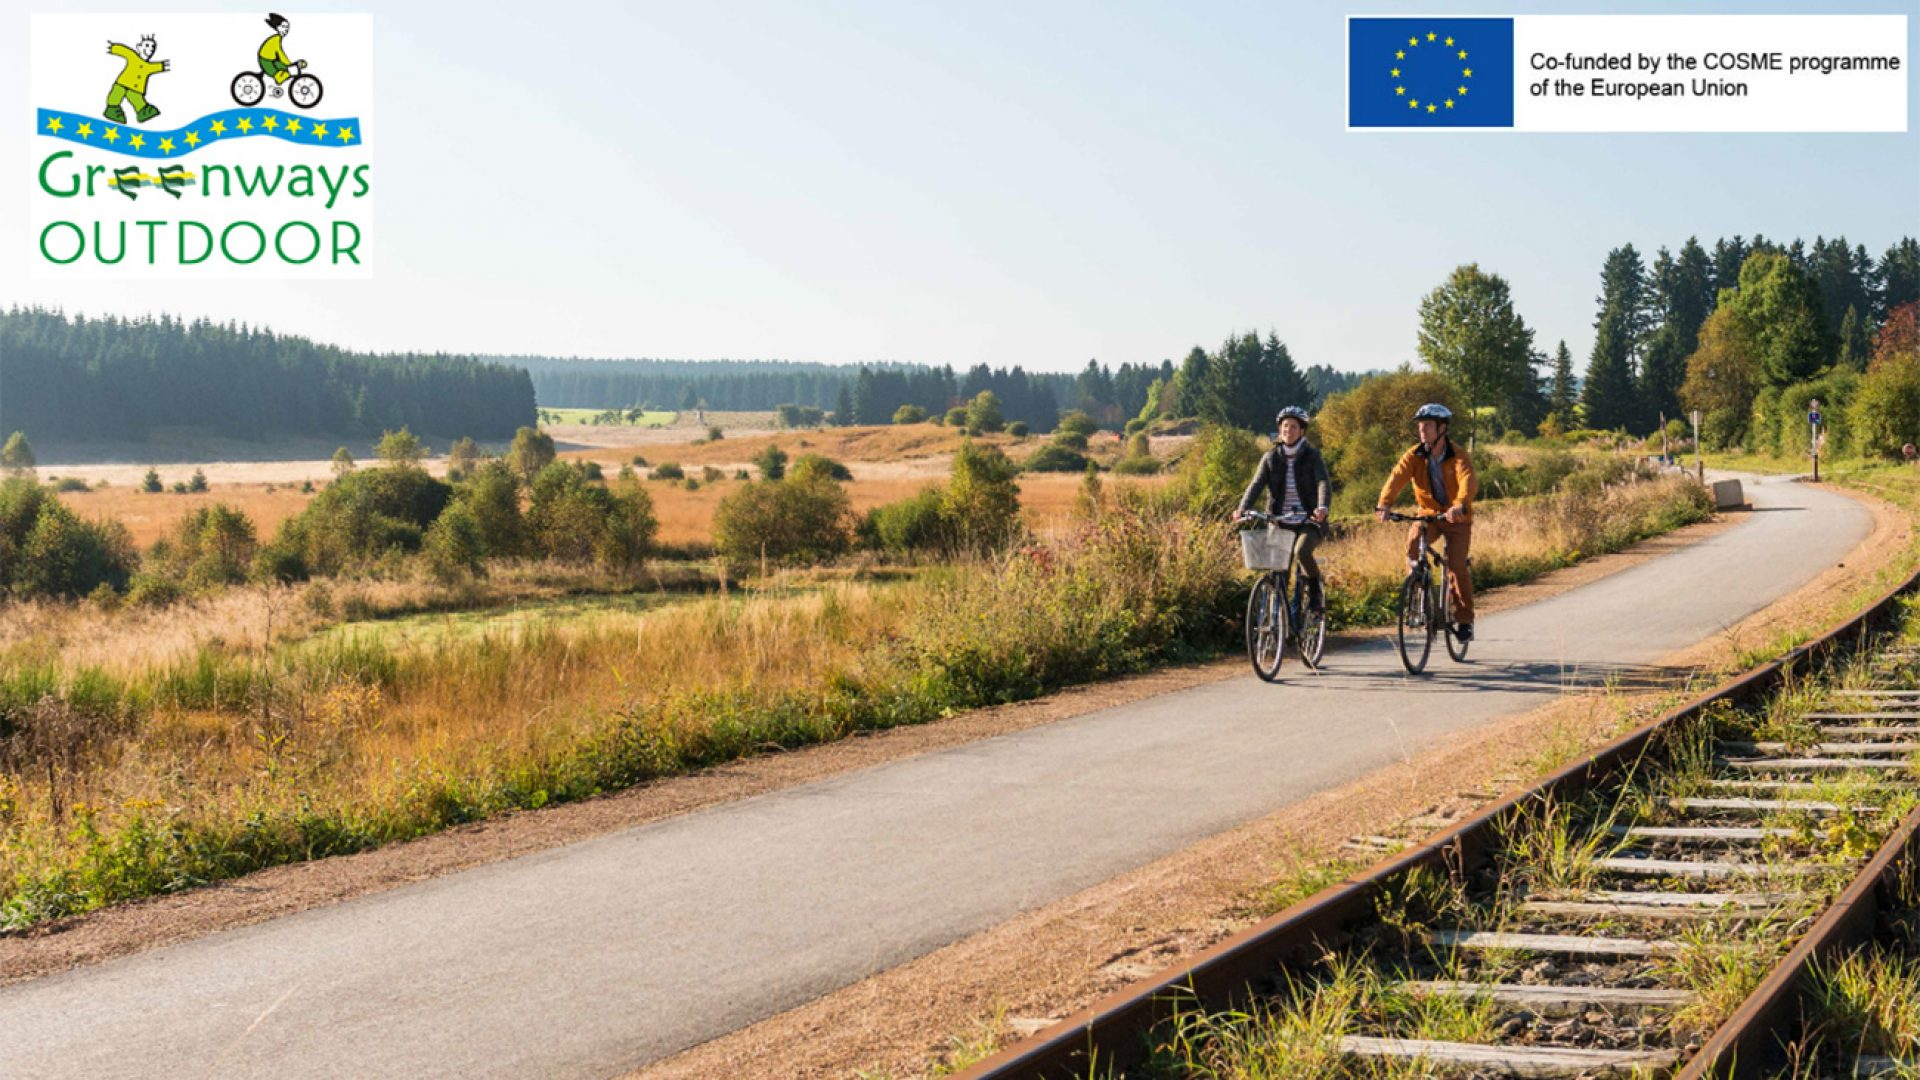 Creation and transnational promotion of an outdoor tourism product linked to European Greenways